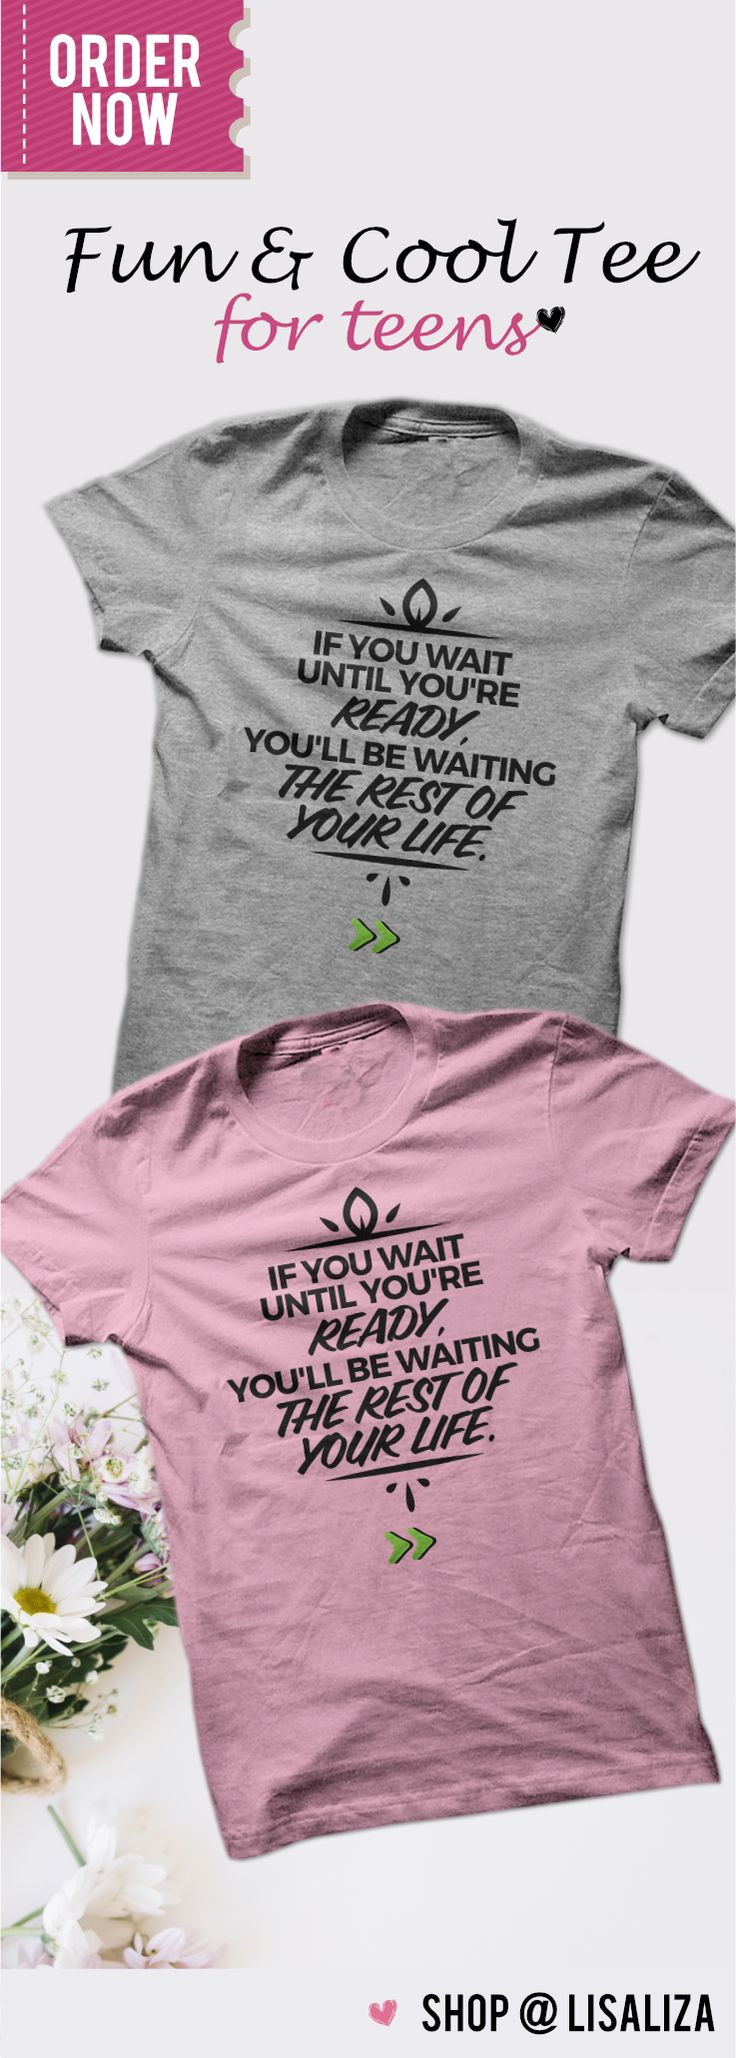 If you wait until you're ready, you'll be waiting the rest of your life. Fun & Cool Tee For teens @ $19.00 . Fun & Cool Tee For teens @ $19.00 . #SayingTee #TeensBoys #TeensChic #Gifts #BestFriends #MotivationalTee